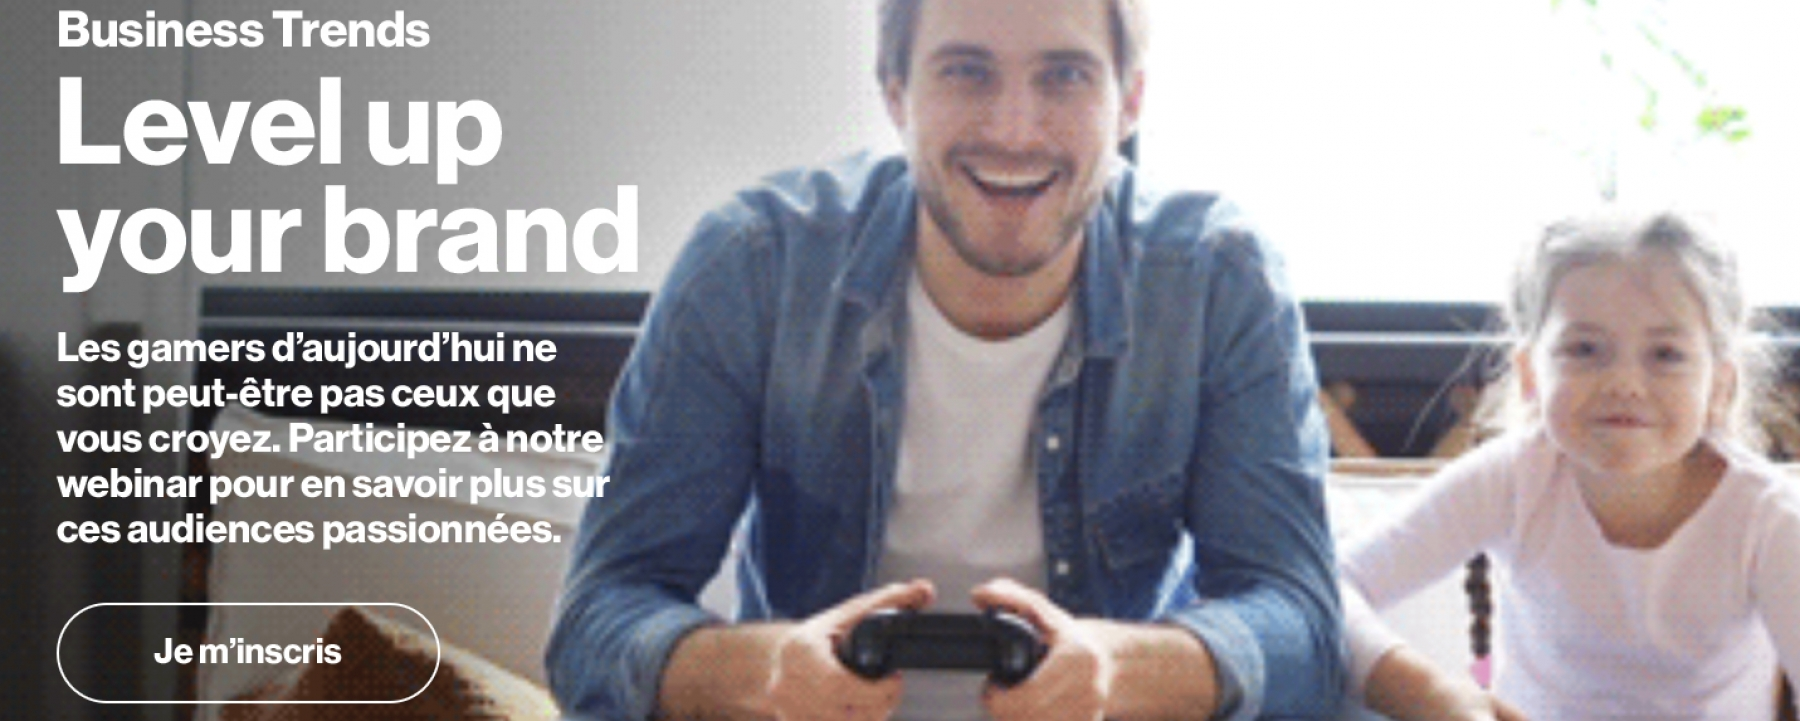 Level up your brand, webinar organisé par Verizon Media le 25 février 2021